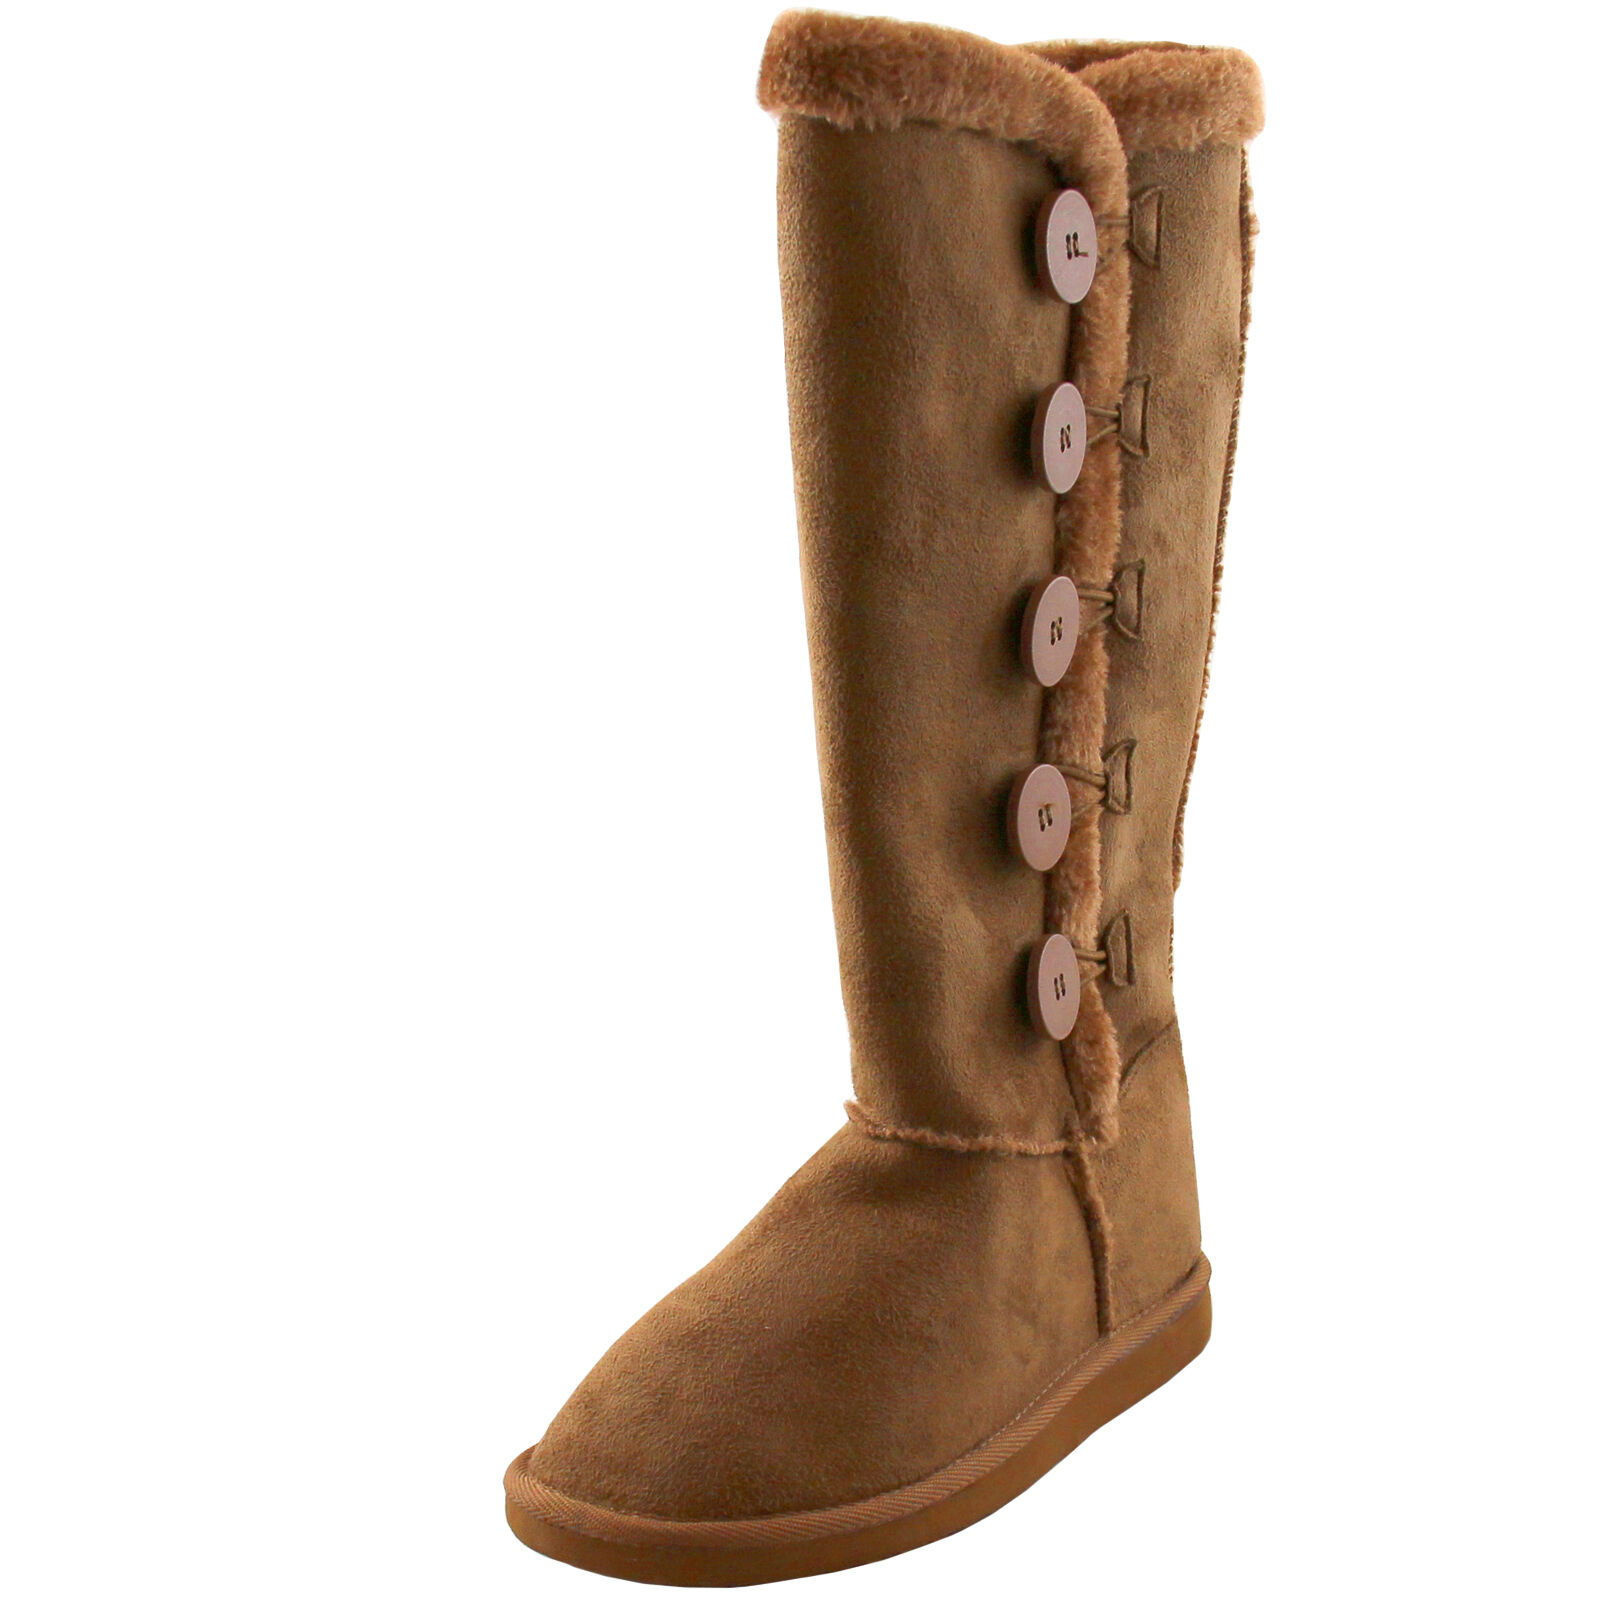 New women's shoes mid shaft boot faux fur synthetic winter warm tan gift idea